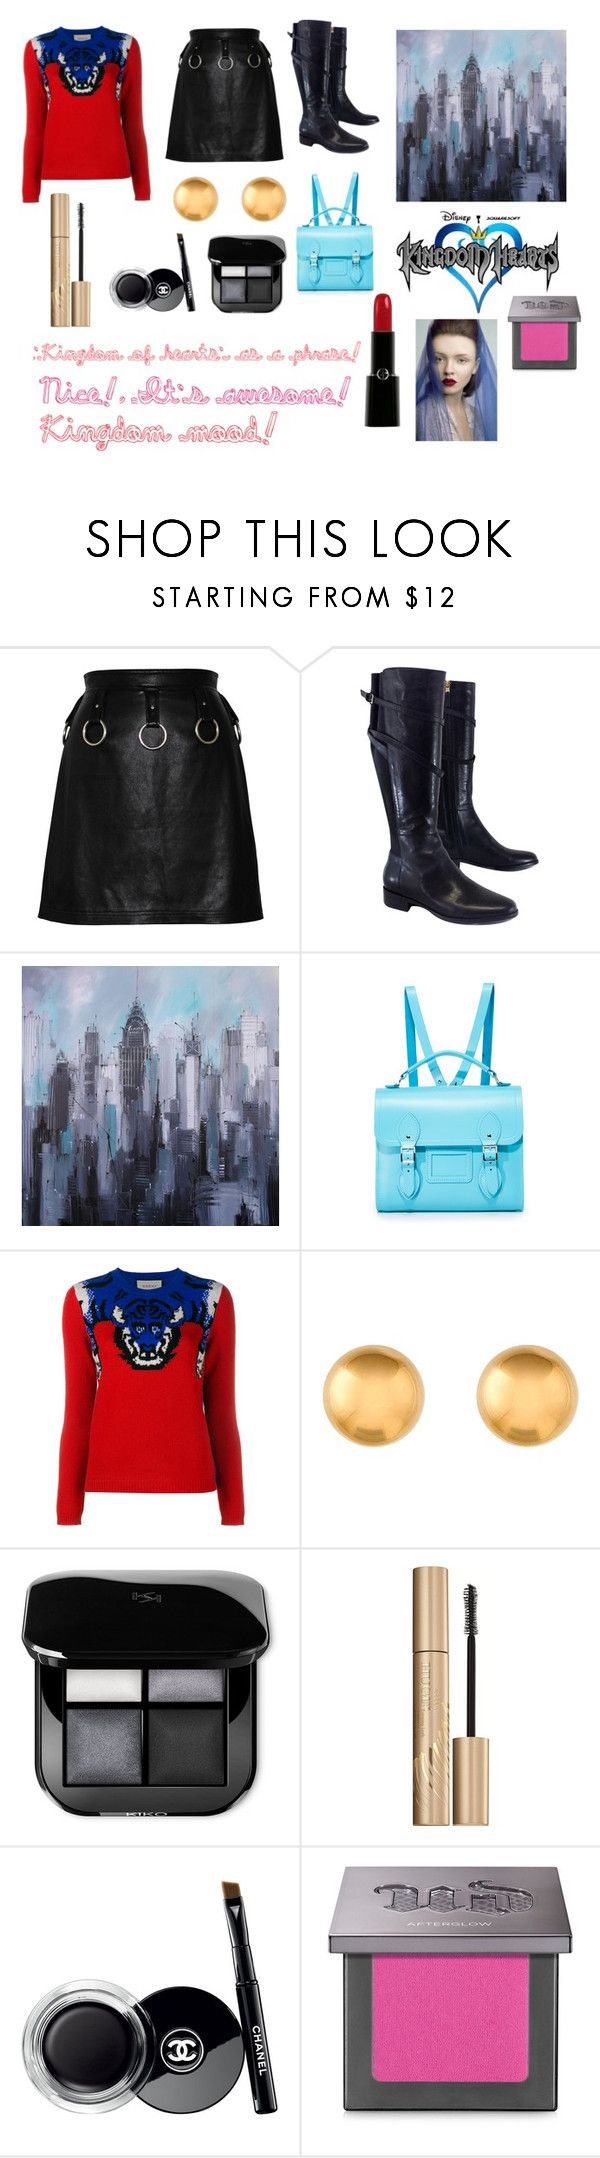 """For Scarlett (friend) - Scarlett's ideal wardrobe by me: 'Kingdom of hearts' as a phrase inspired!"" by sarah-m-smith ❤ liked on Polyvore featuring L.K.Bennett, The Cambridge Satchel Company, Gucci, Stila, Chanel, Urban Decay and Giorgio Armani"